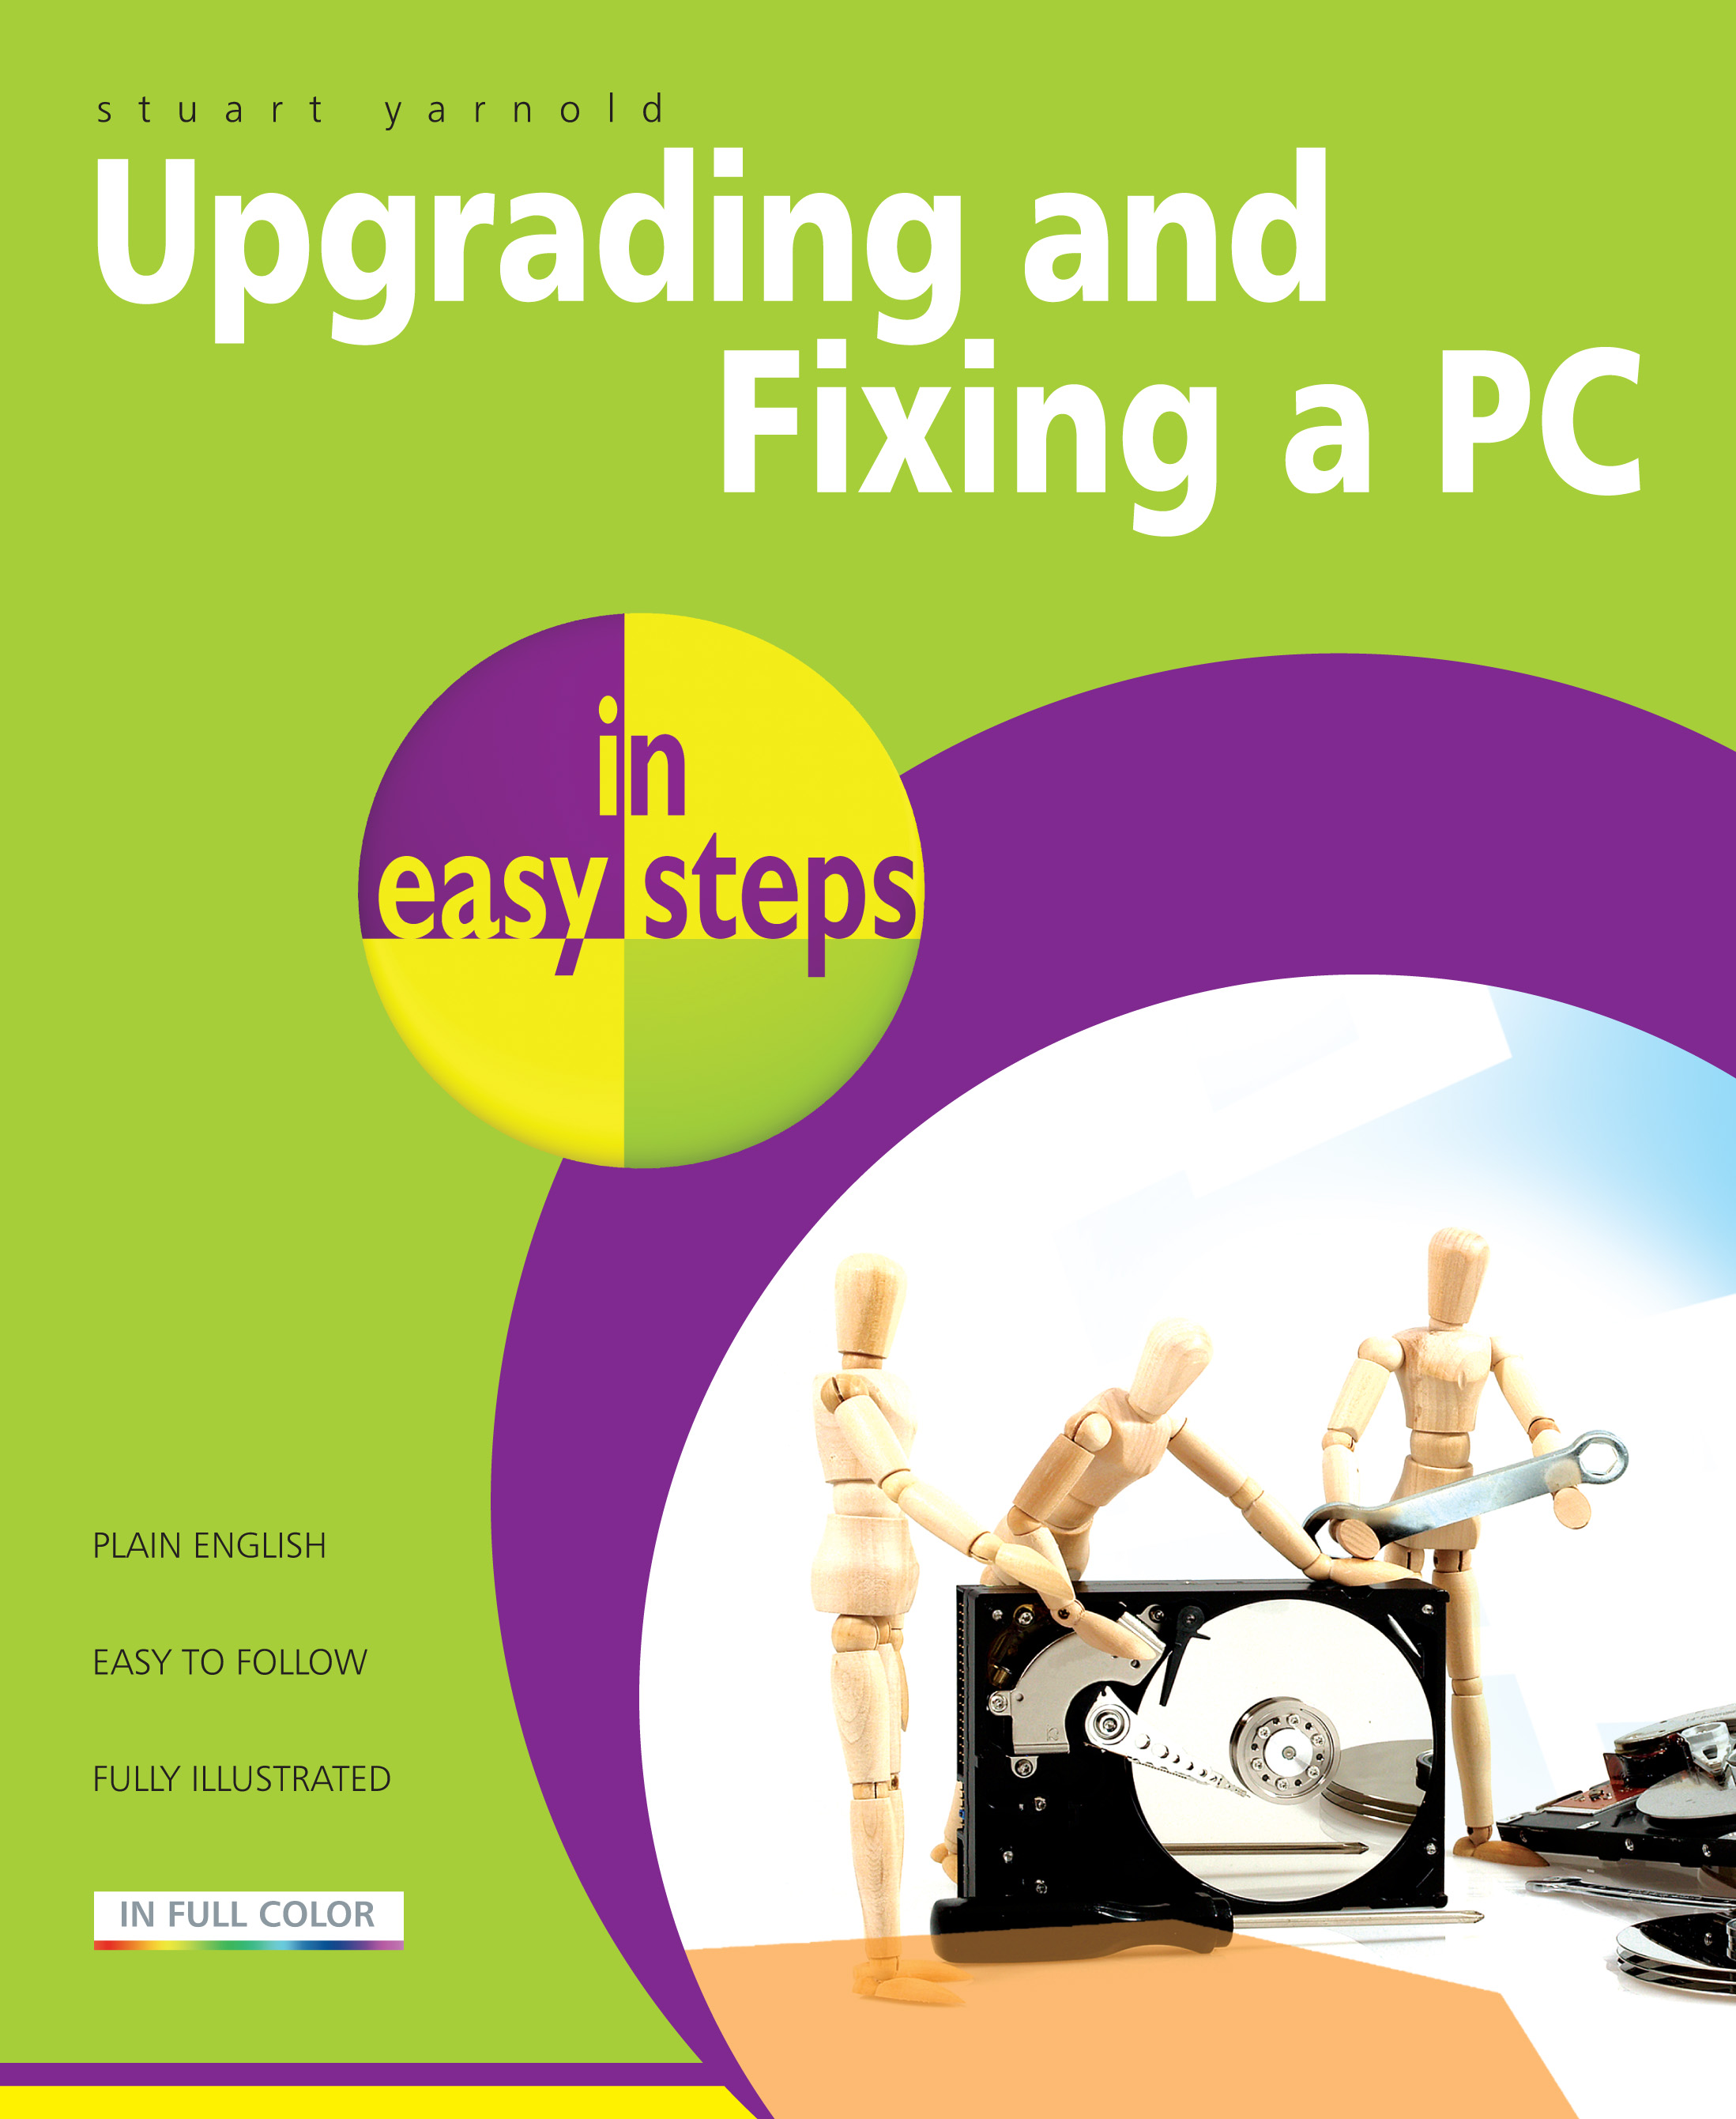 9781840784305 Upgrading and Fixing a PC in easy steps